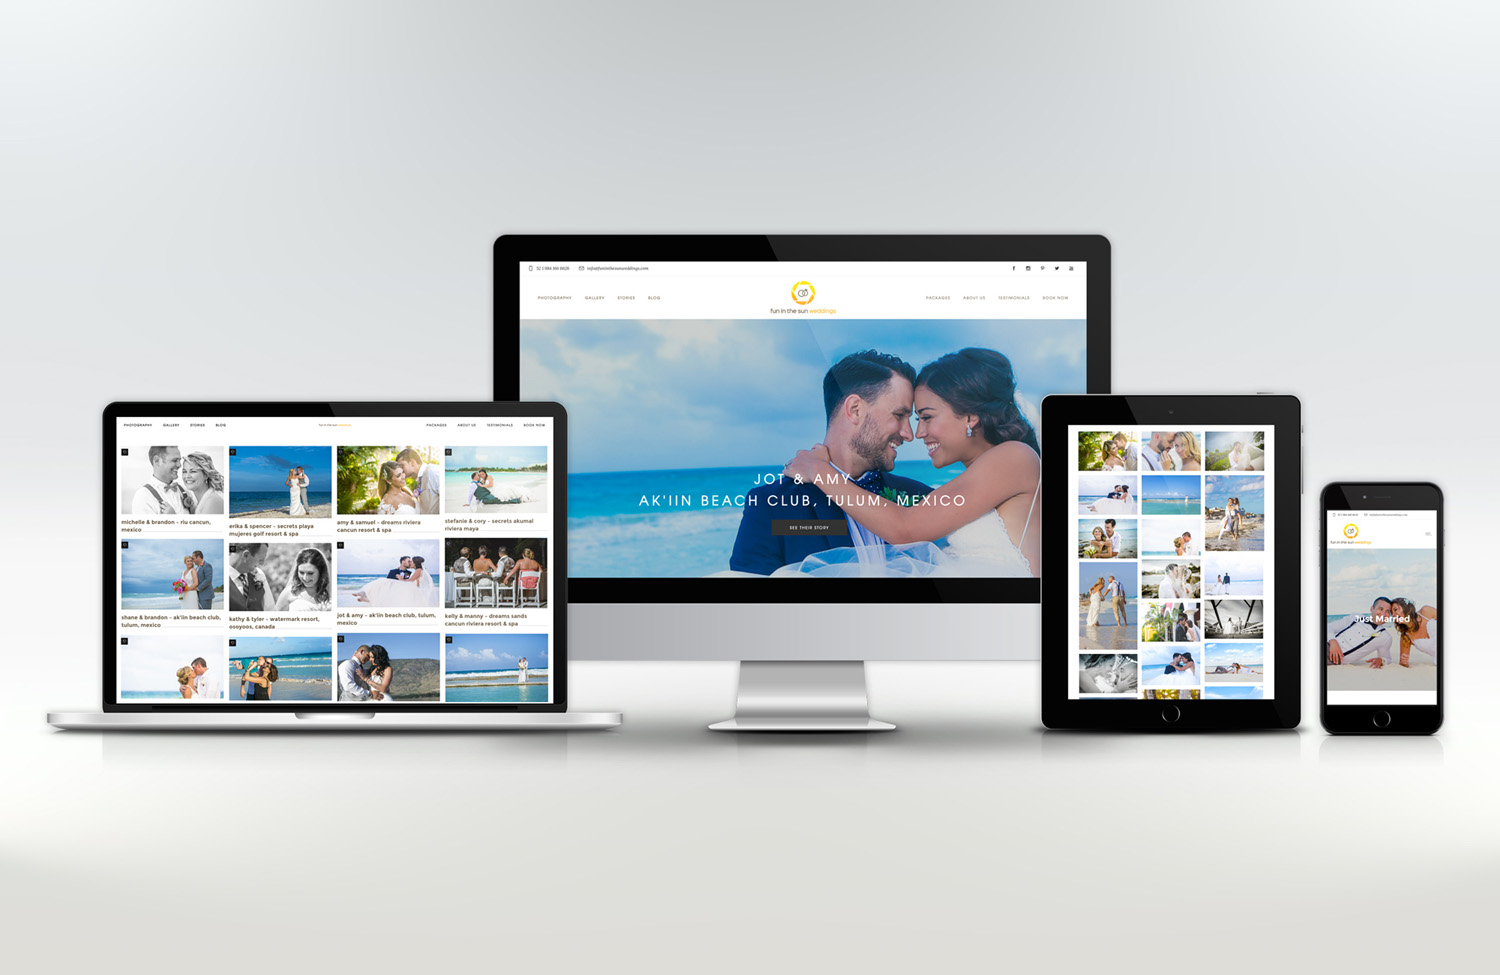 fun-in-the-sun-weddings-web-design-01